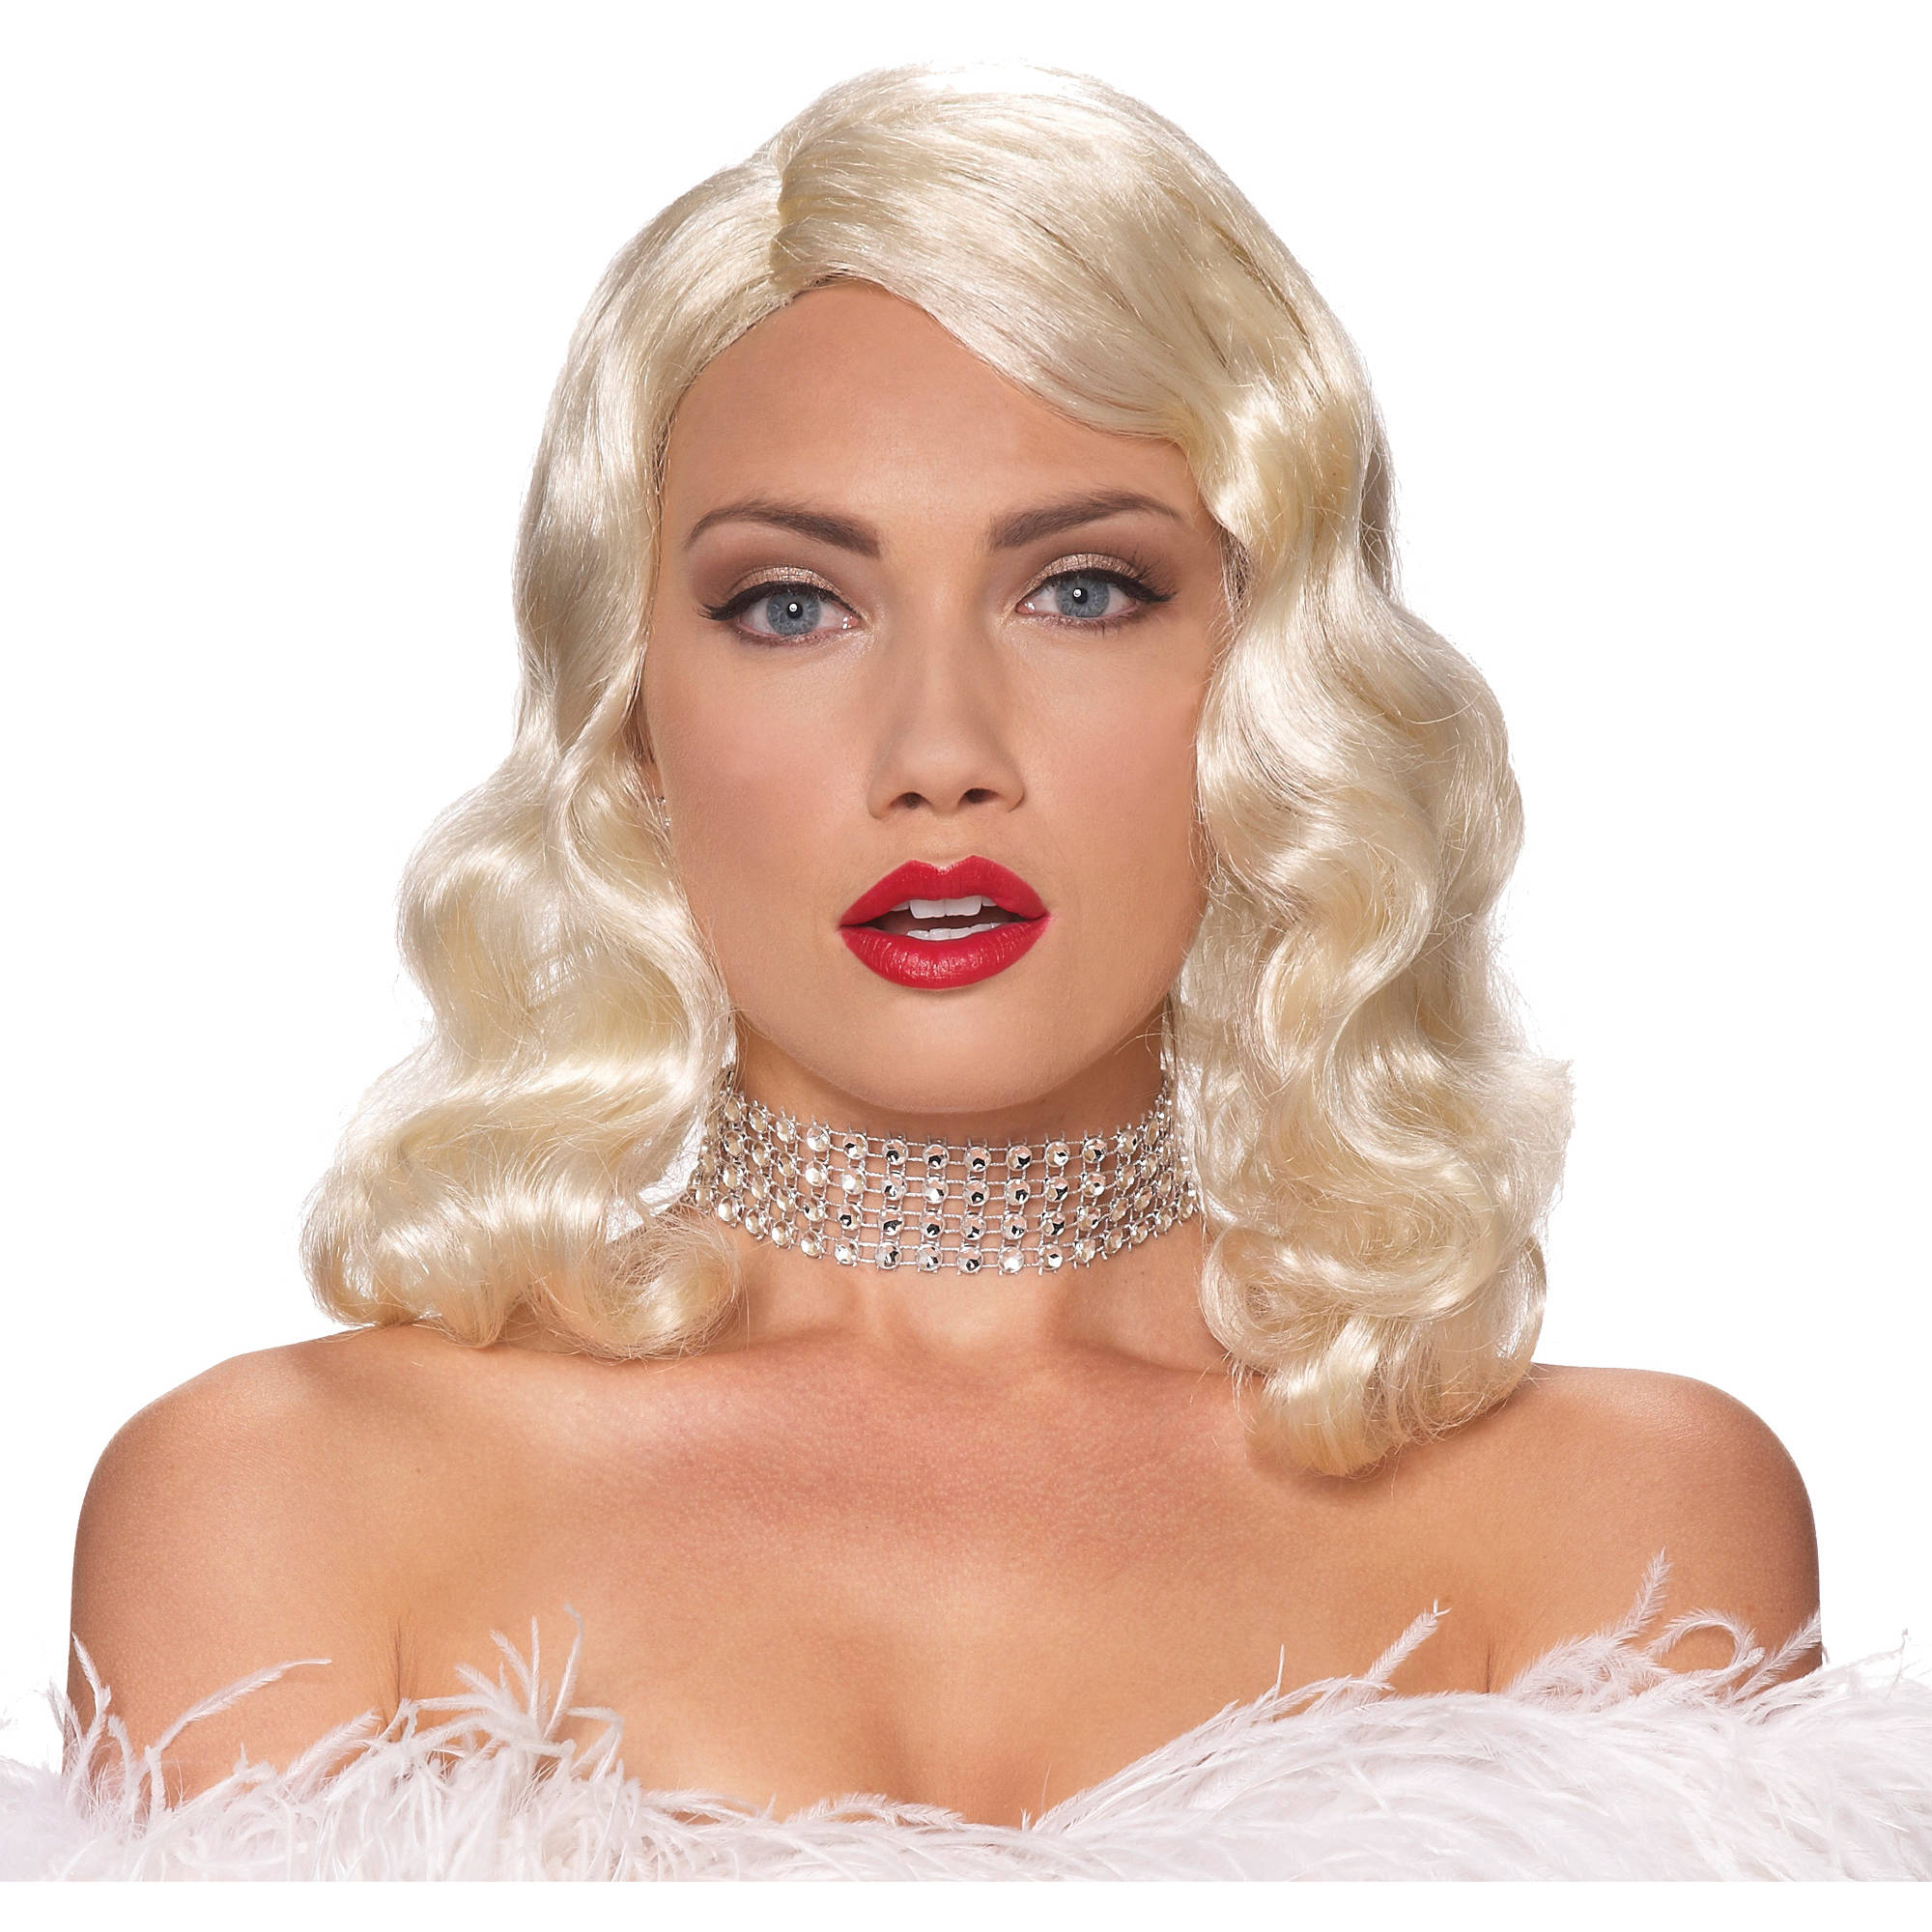 blonde wig femme fatale adult halloween accessory - Halloween Costumes With Blonde Wig